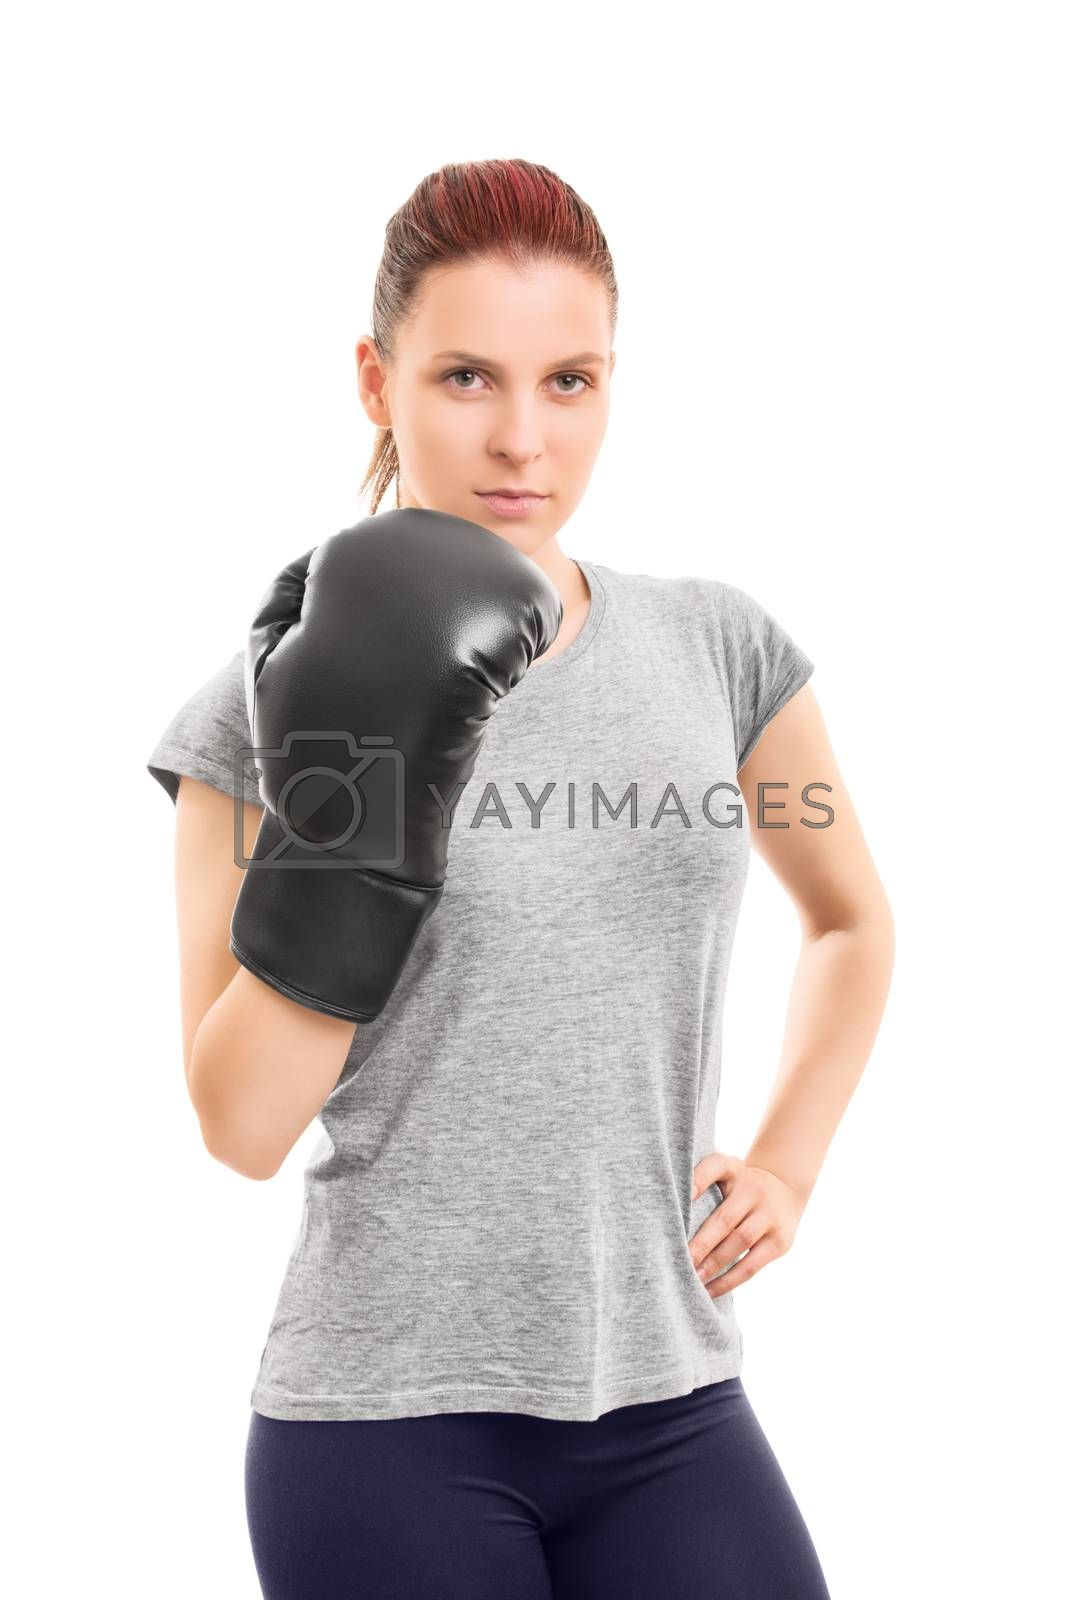 A portrait of a beautiful young girl posing with a boxing glove, isolated on white background.